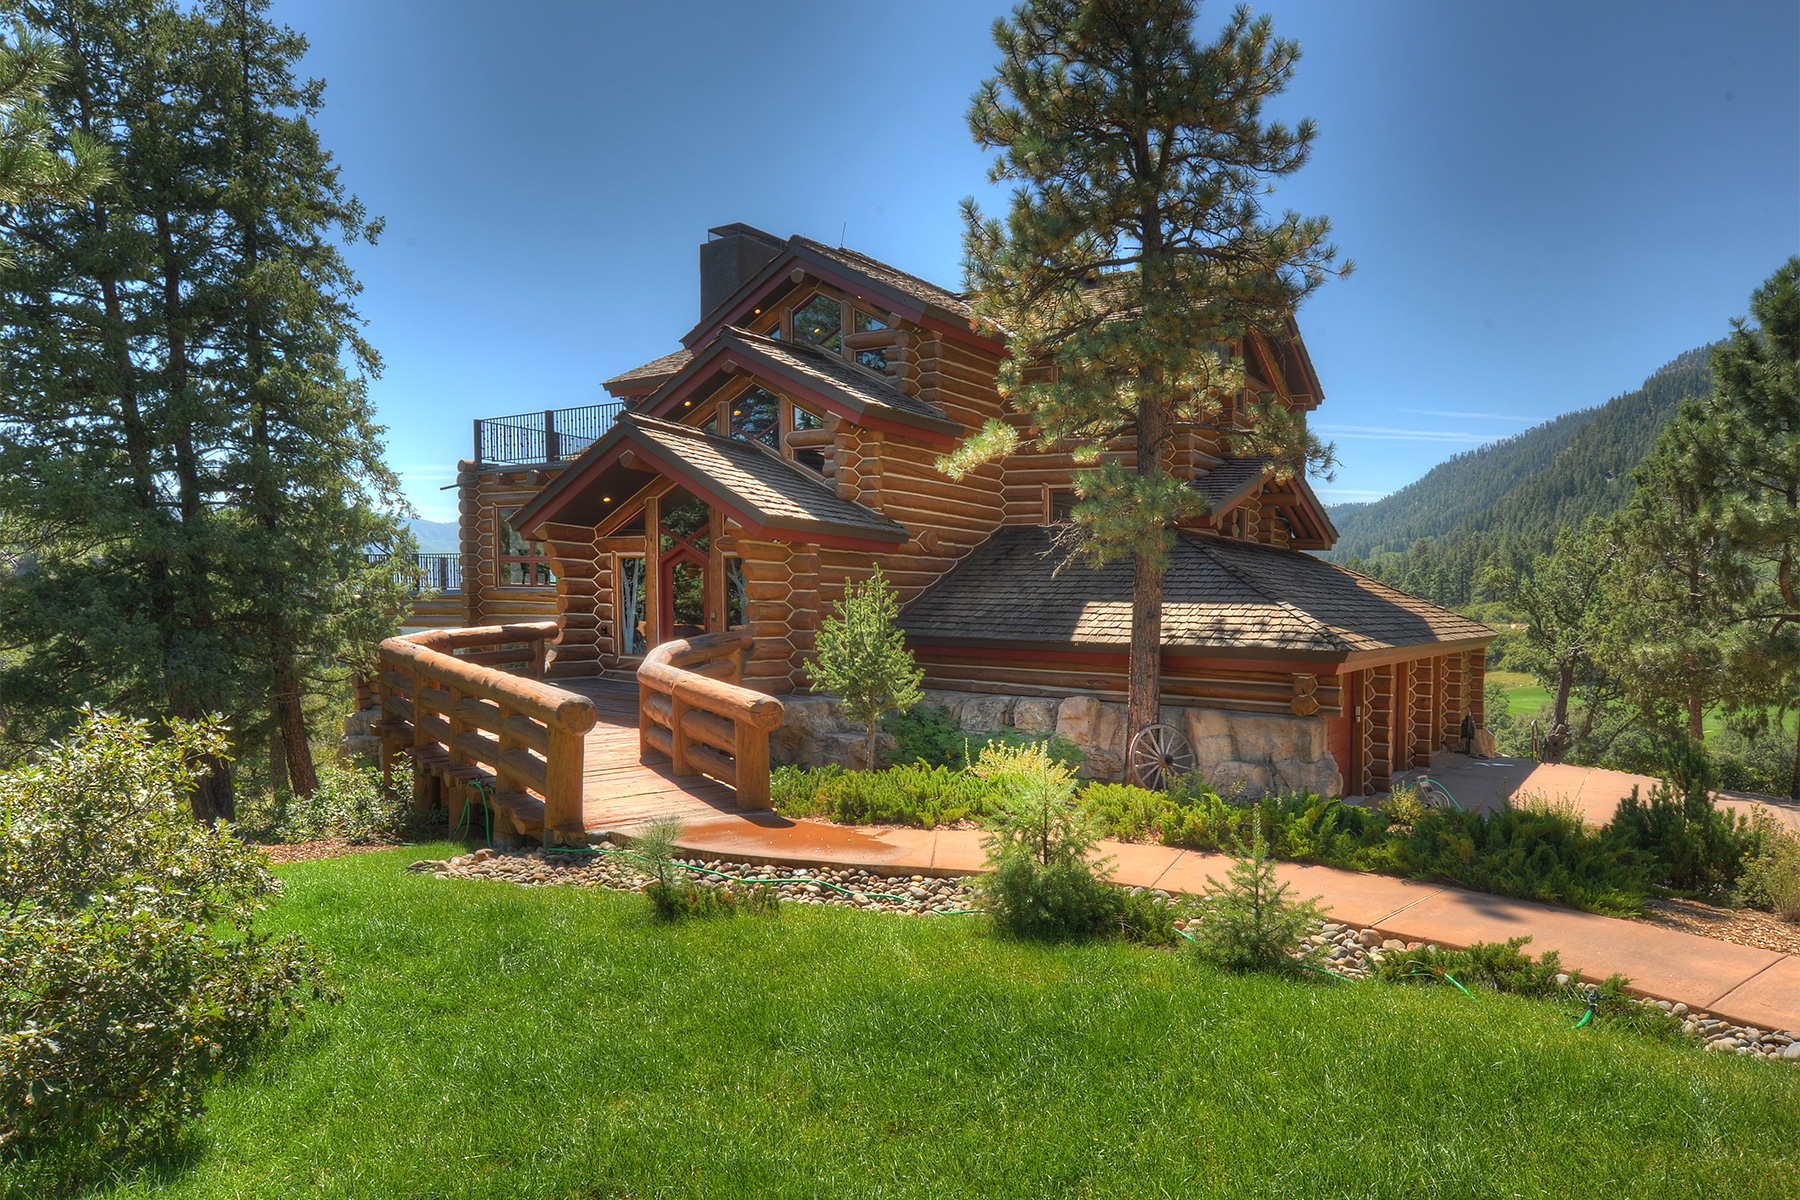 Single Family Home for Sale at 110 Peregrine Drive Durango, Colorado 81301 United States